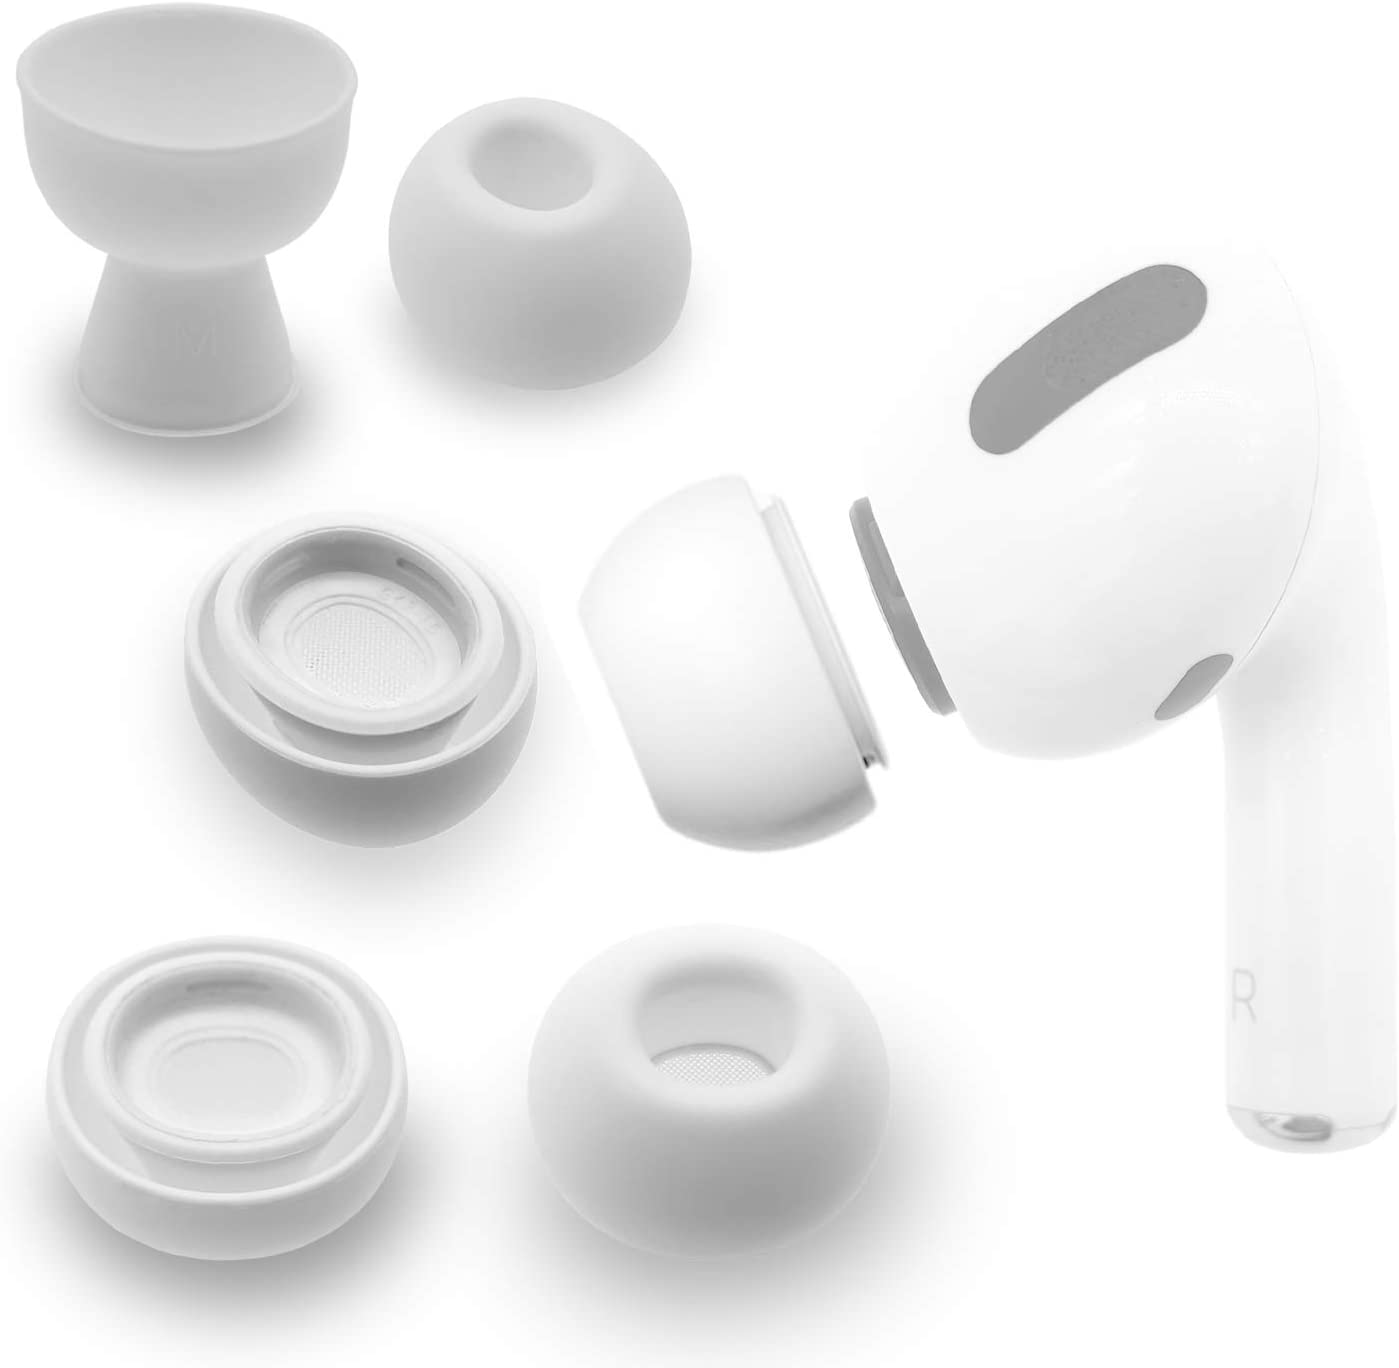 Silicone Replacement Eartips Compatibile with Apple AirPods Pro, [3 Pairs] Replacement Earbuds Tips,Anti-Slip Silicone Soft Cover Earbud Ear Tips Medium,White